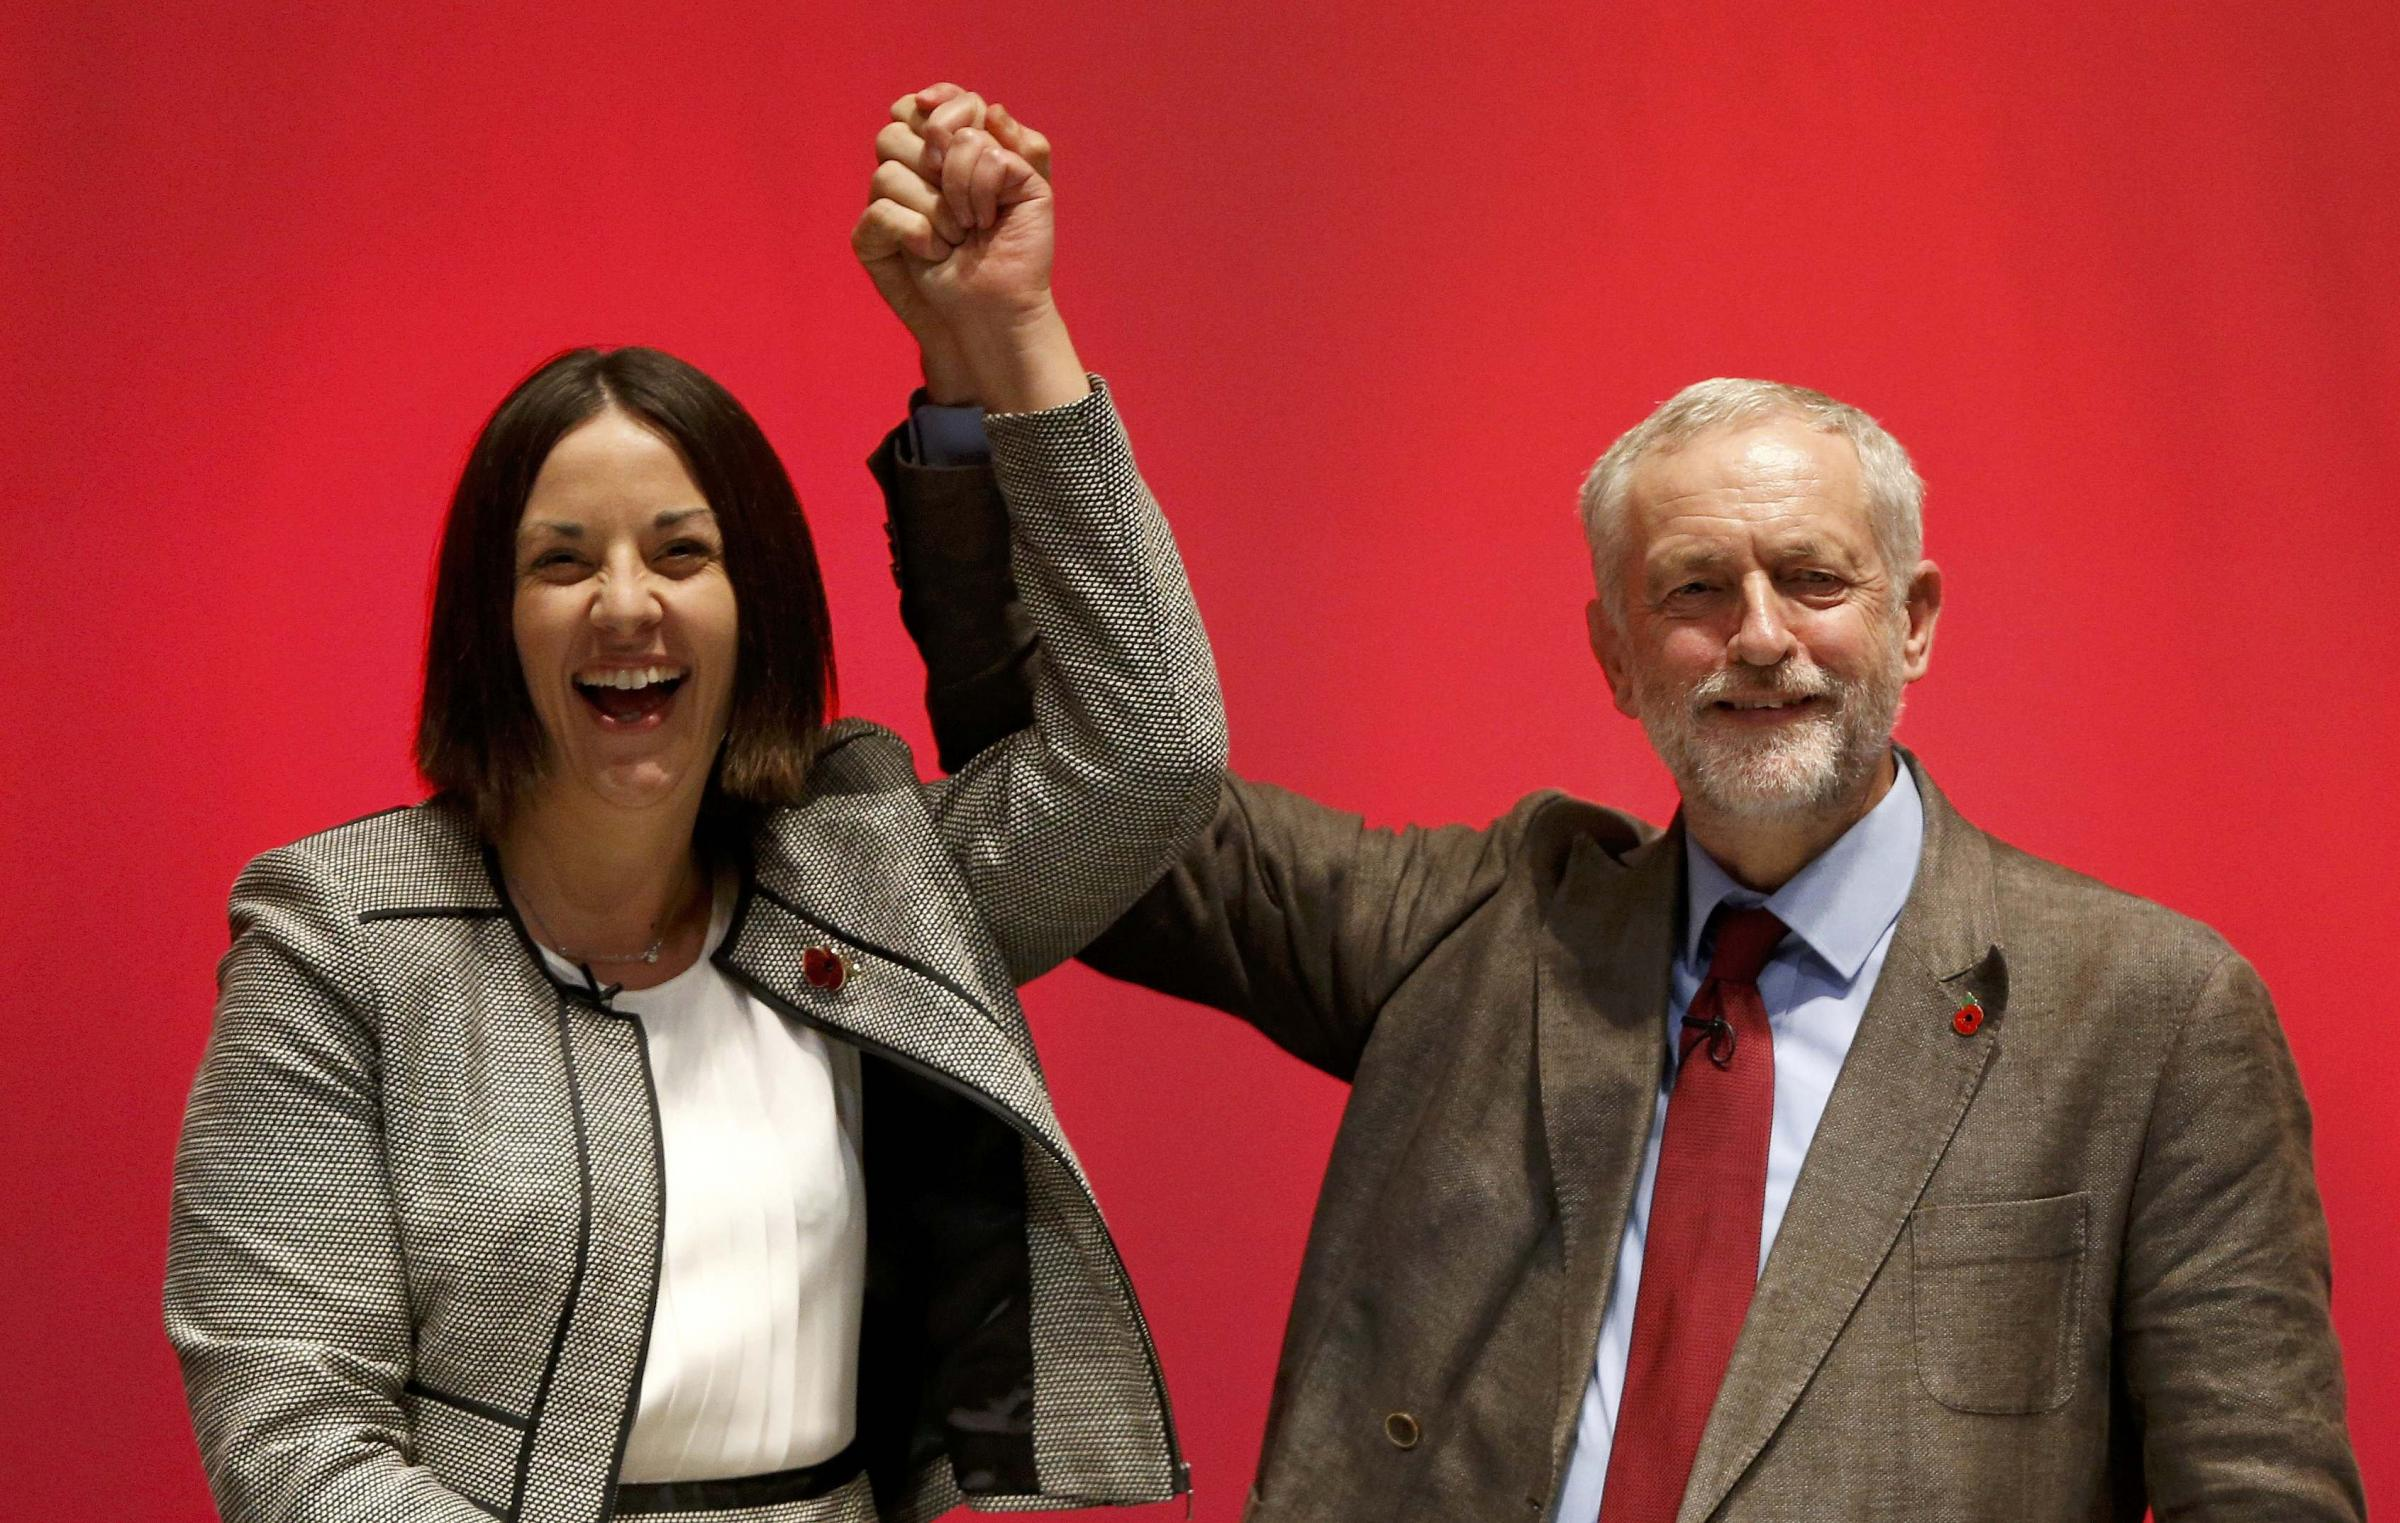 Kezia Dugdale steps down as leader of Scottish Labour